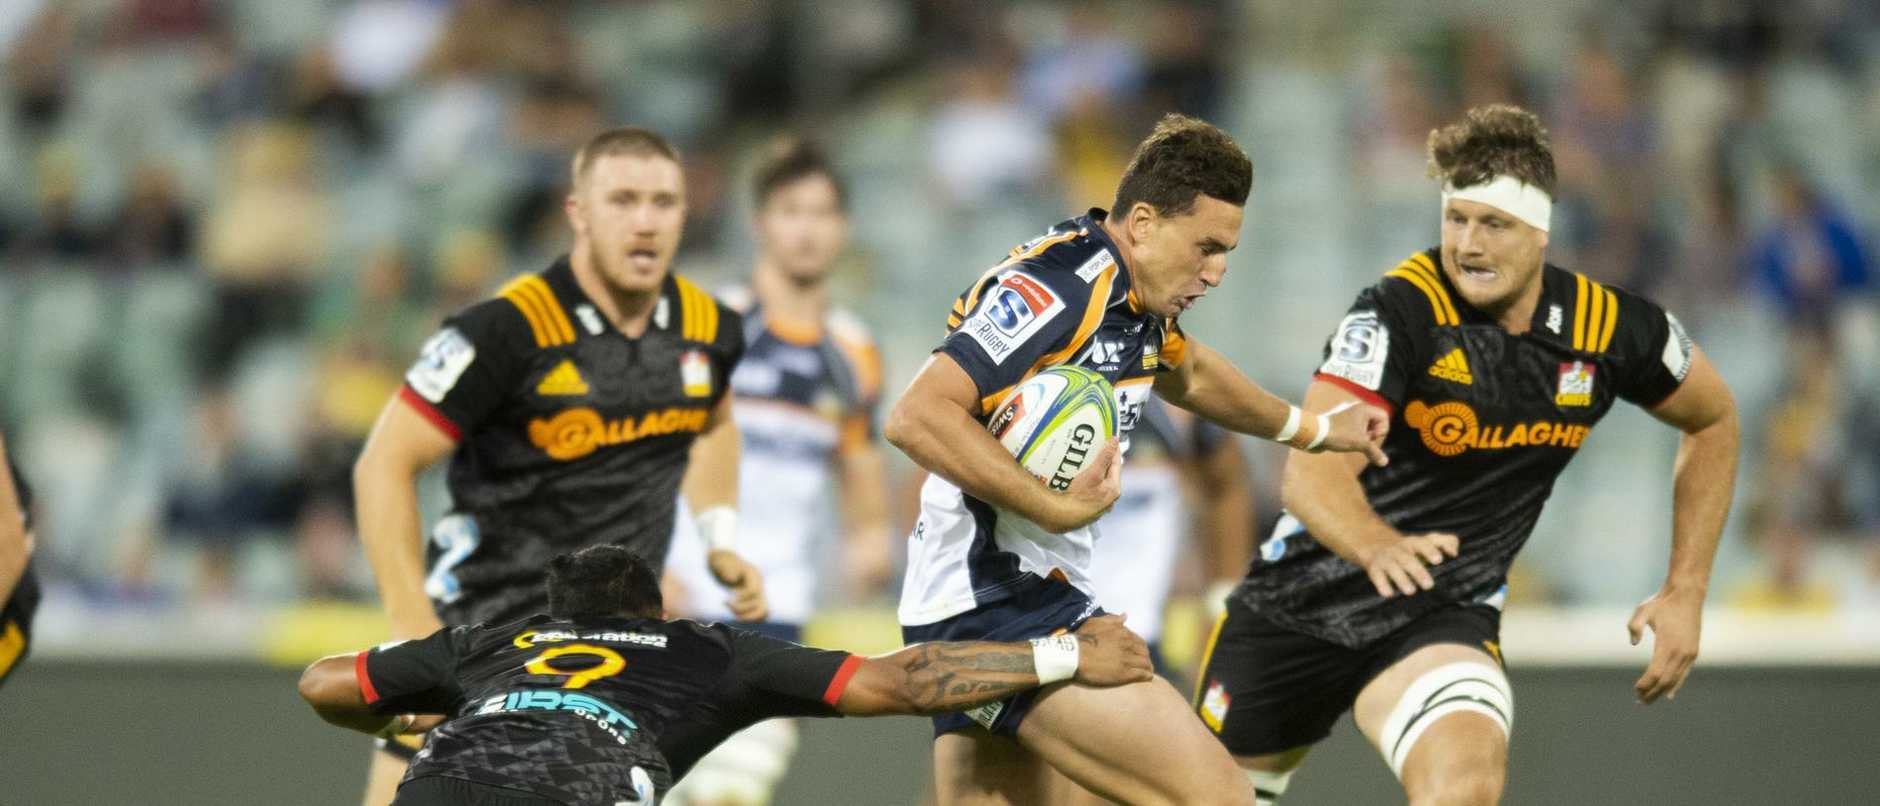 Brumbies speedster Tom Banks has been selected to fill the void left by Israel Folau. Picture: AAP Image/Rohan Thomson